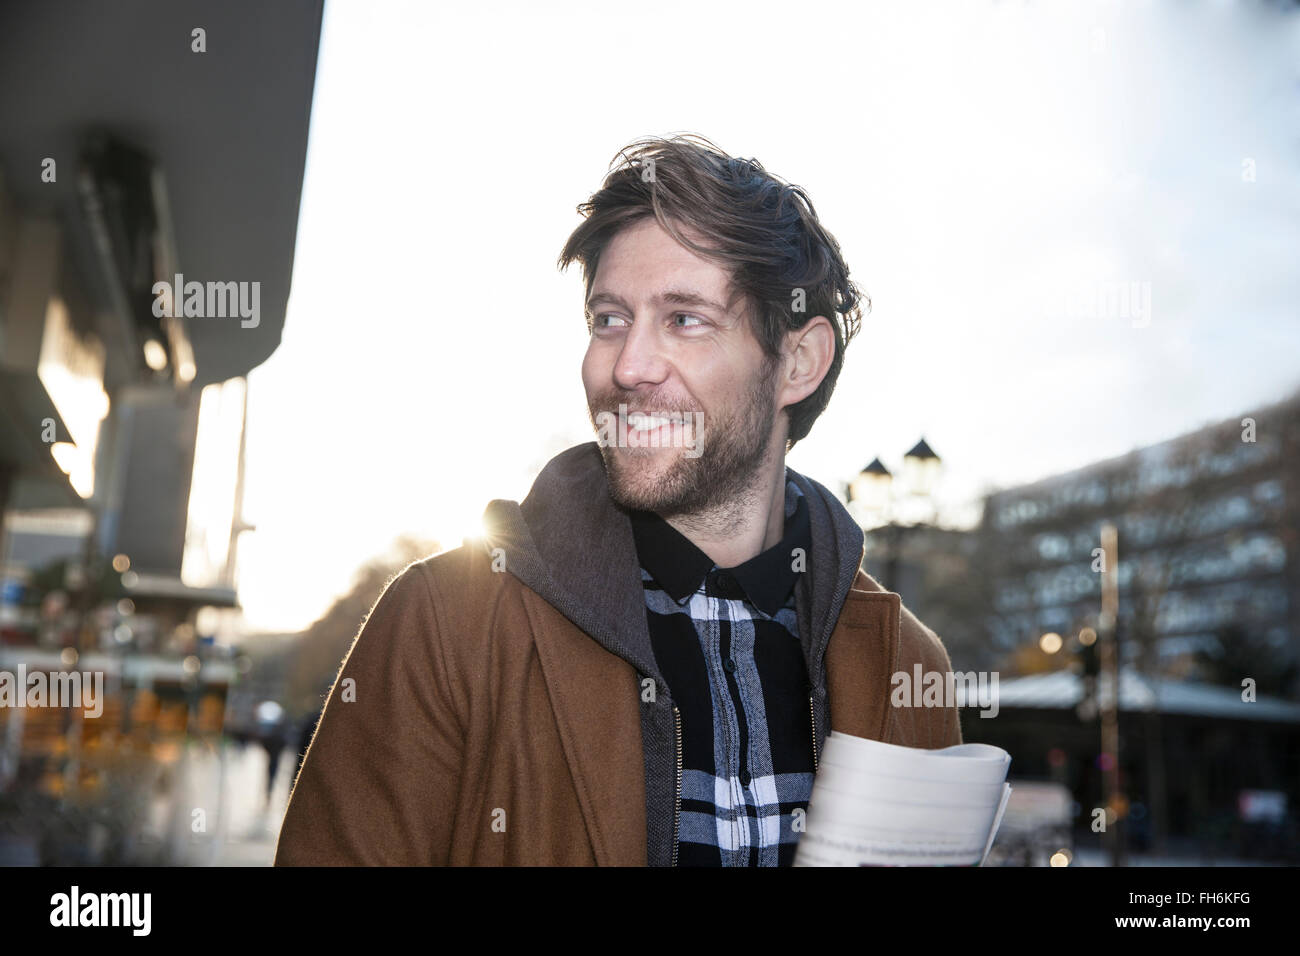 Portrait of smiling man watching something - Stock Image